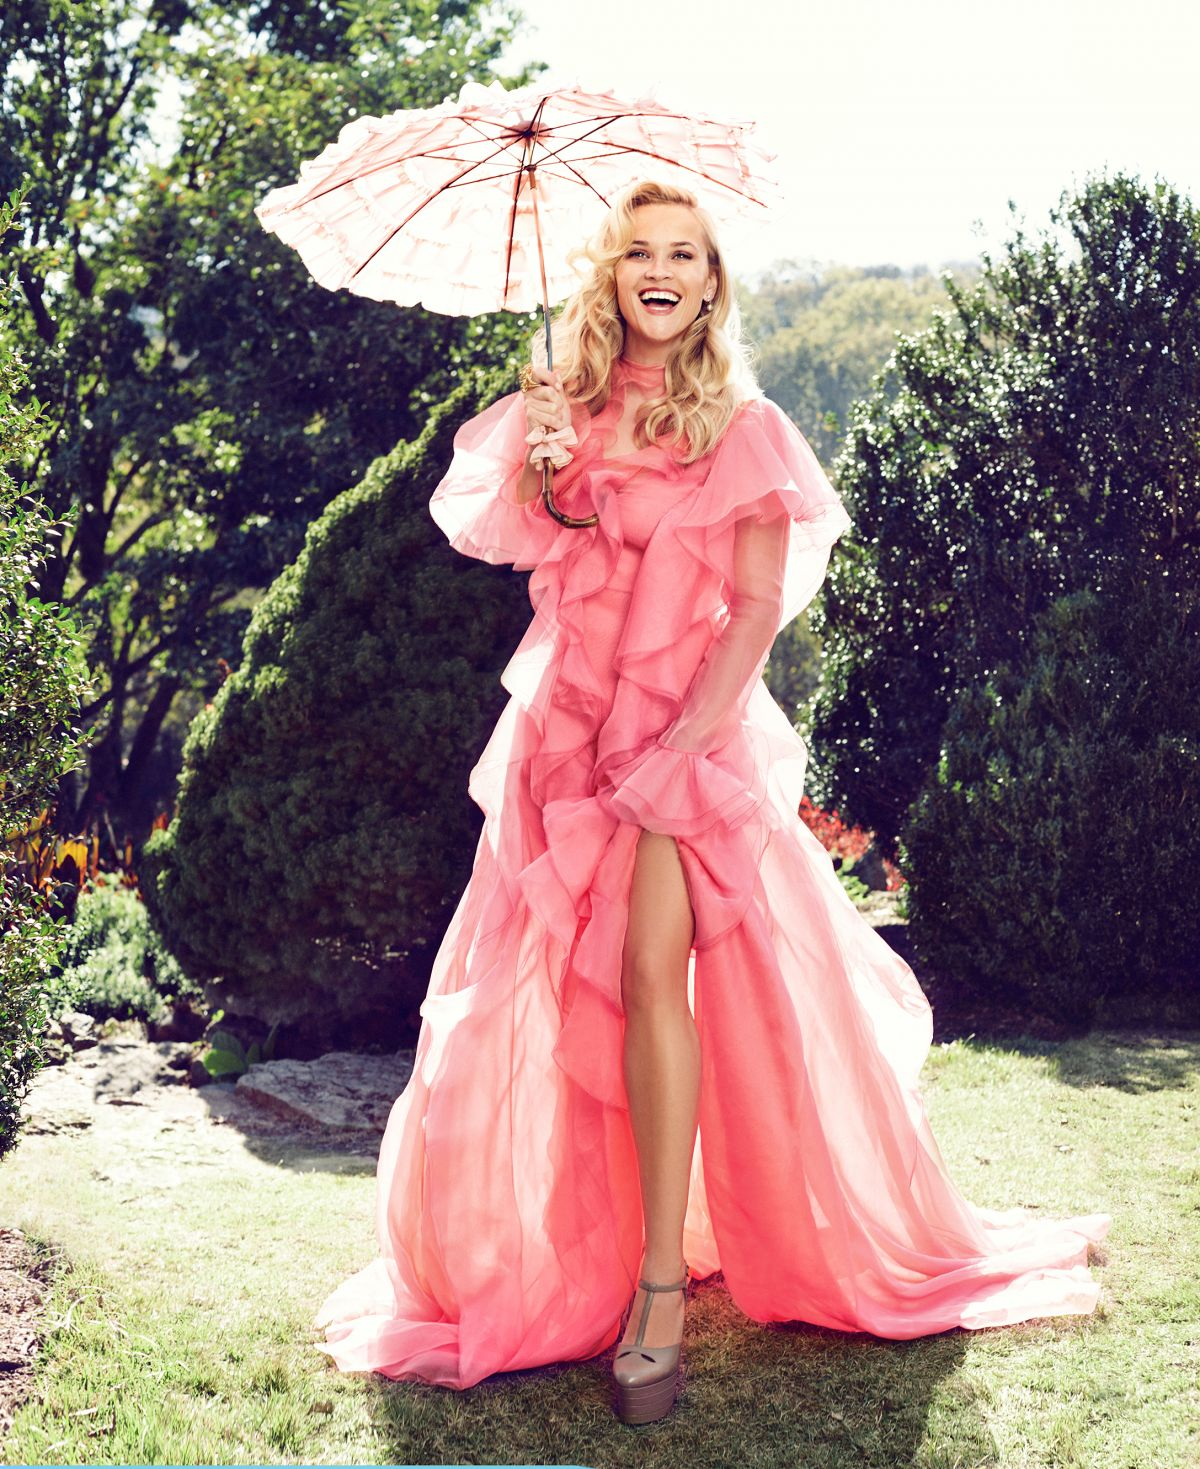 reese-witherspoon-in-harper-s-bazaar-magazine-february-2016-issue_1.jpg